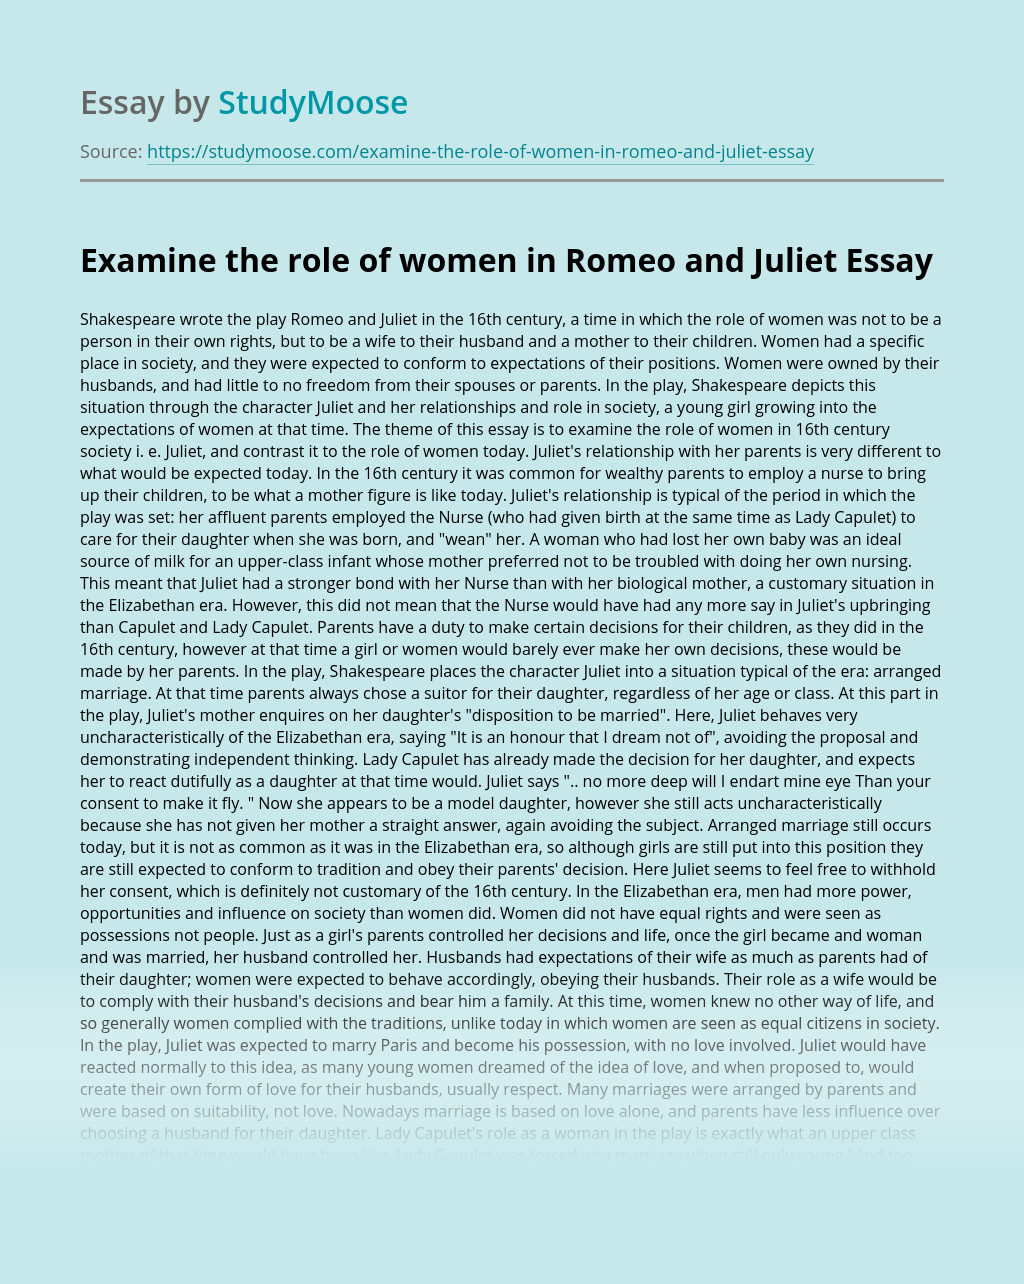 Examine the role of women in Romeo and Juliet